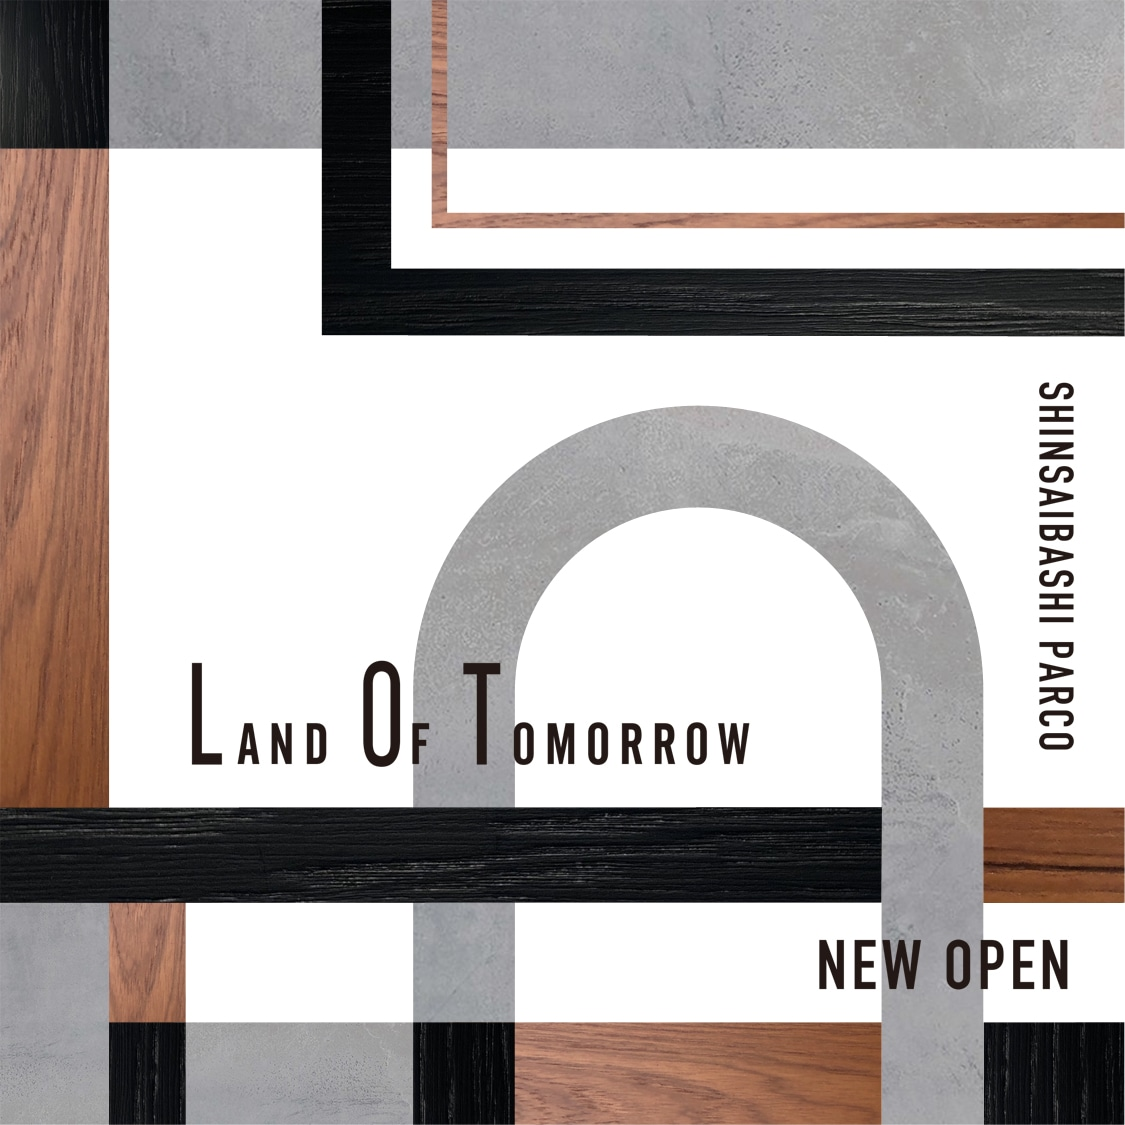 LAND OF TOMORROW SHINSAIBASHI PARCO NEW OPEN November 20th, 2020